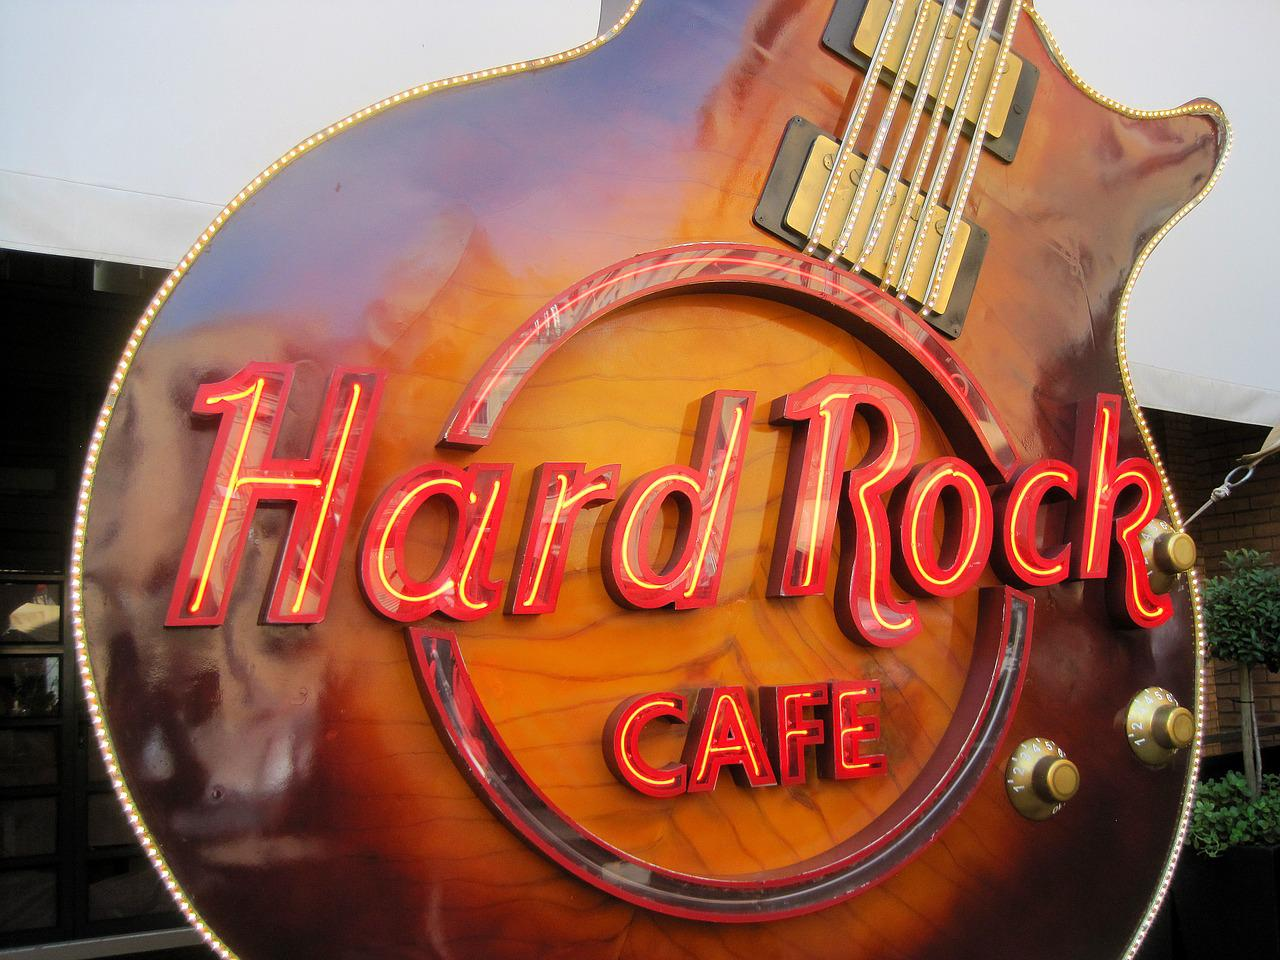 10 critical decisions of operations management hard rock cafe Operations management at hard rock cafe - duration: 12:23 professor bassell 2,751 views  activity networks and critical path analysis - duration: 16:11 jarek francik 172,060 views.